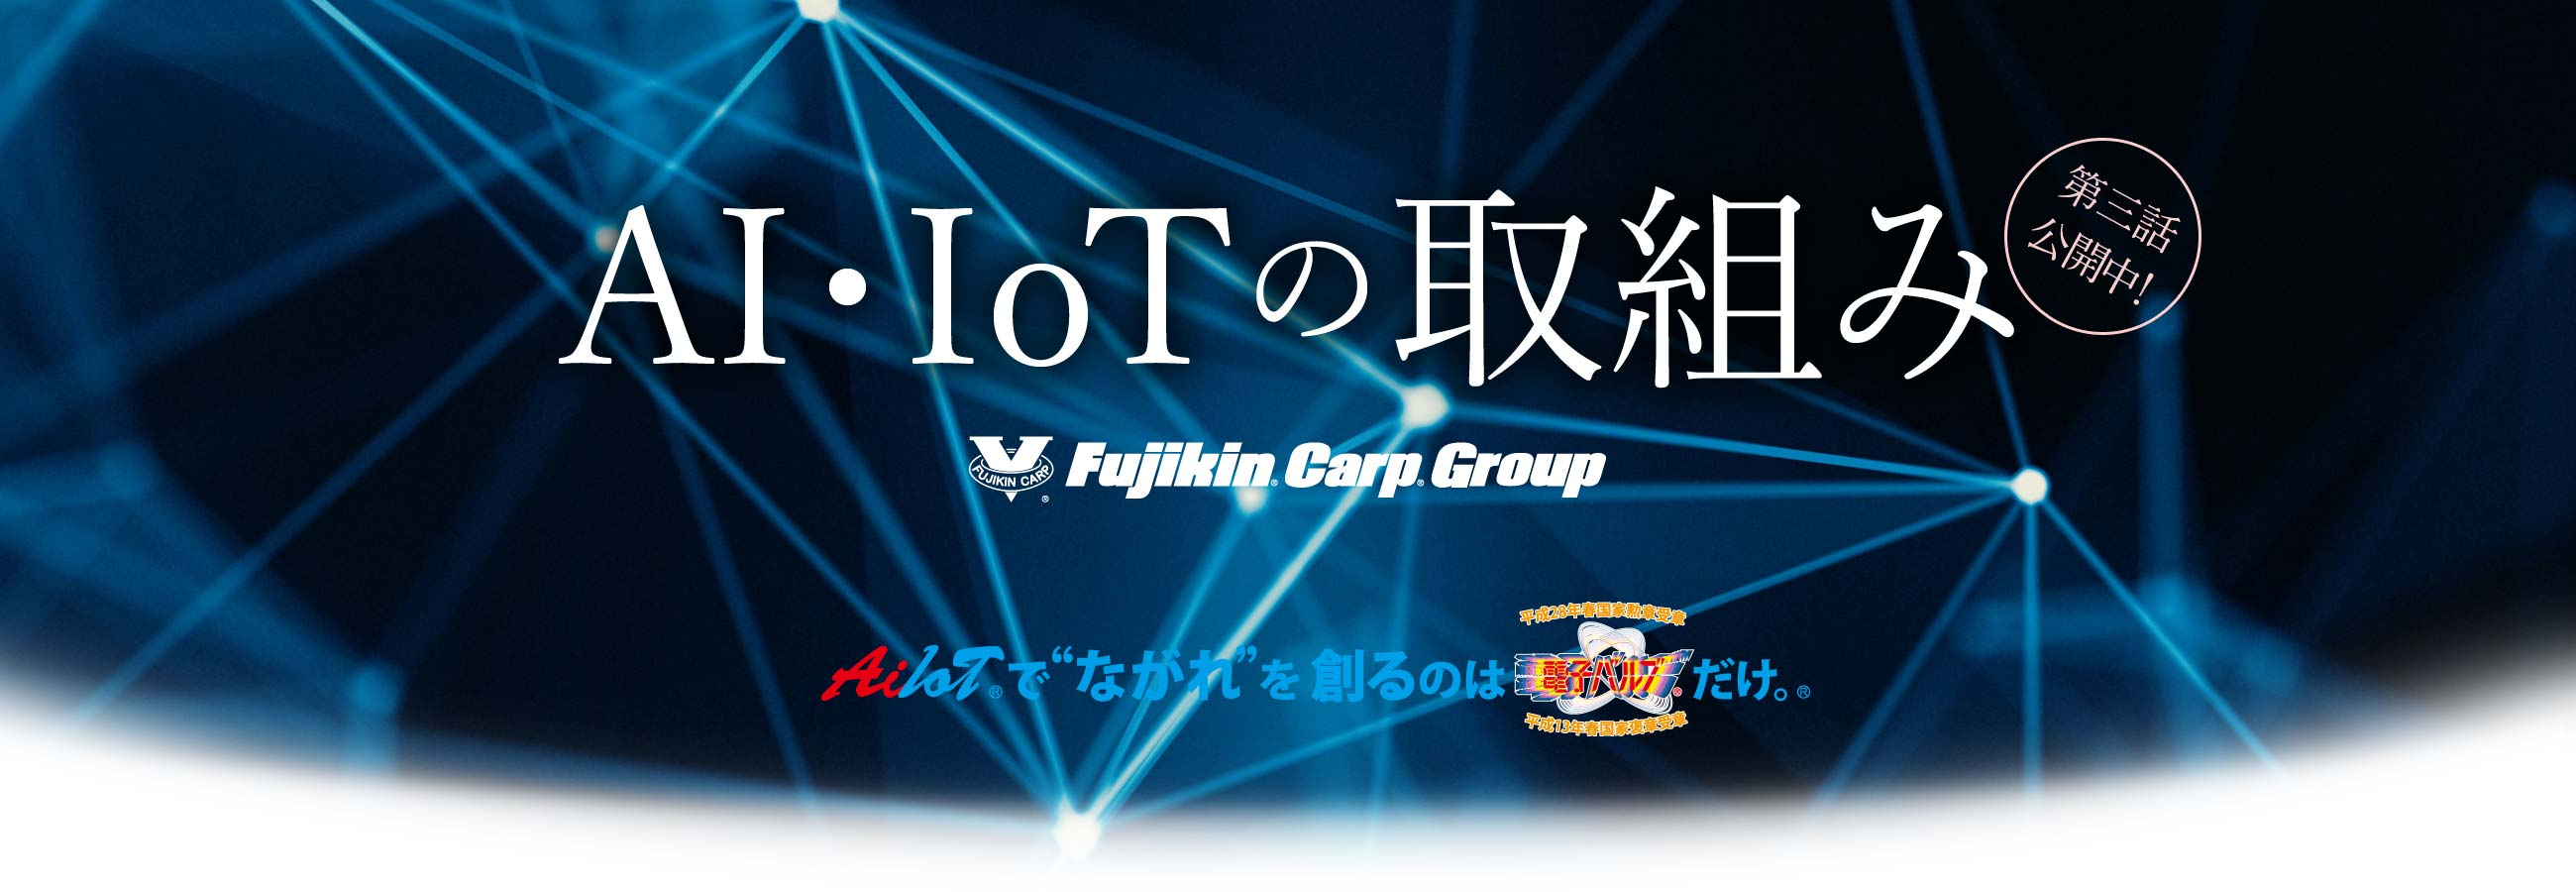 Approach to AI・IOT